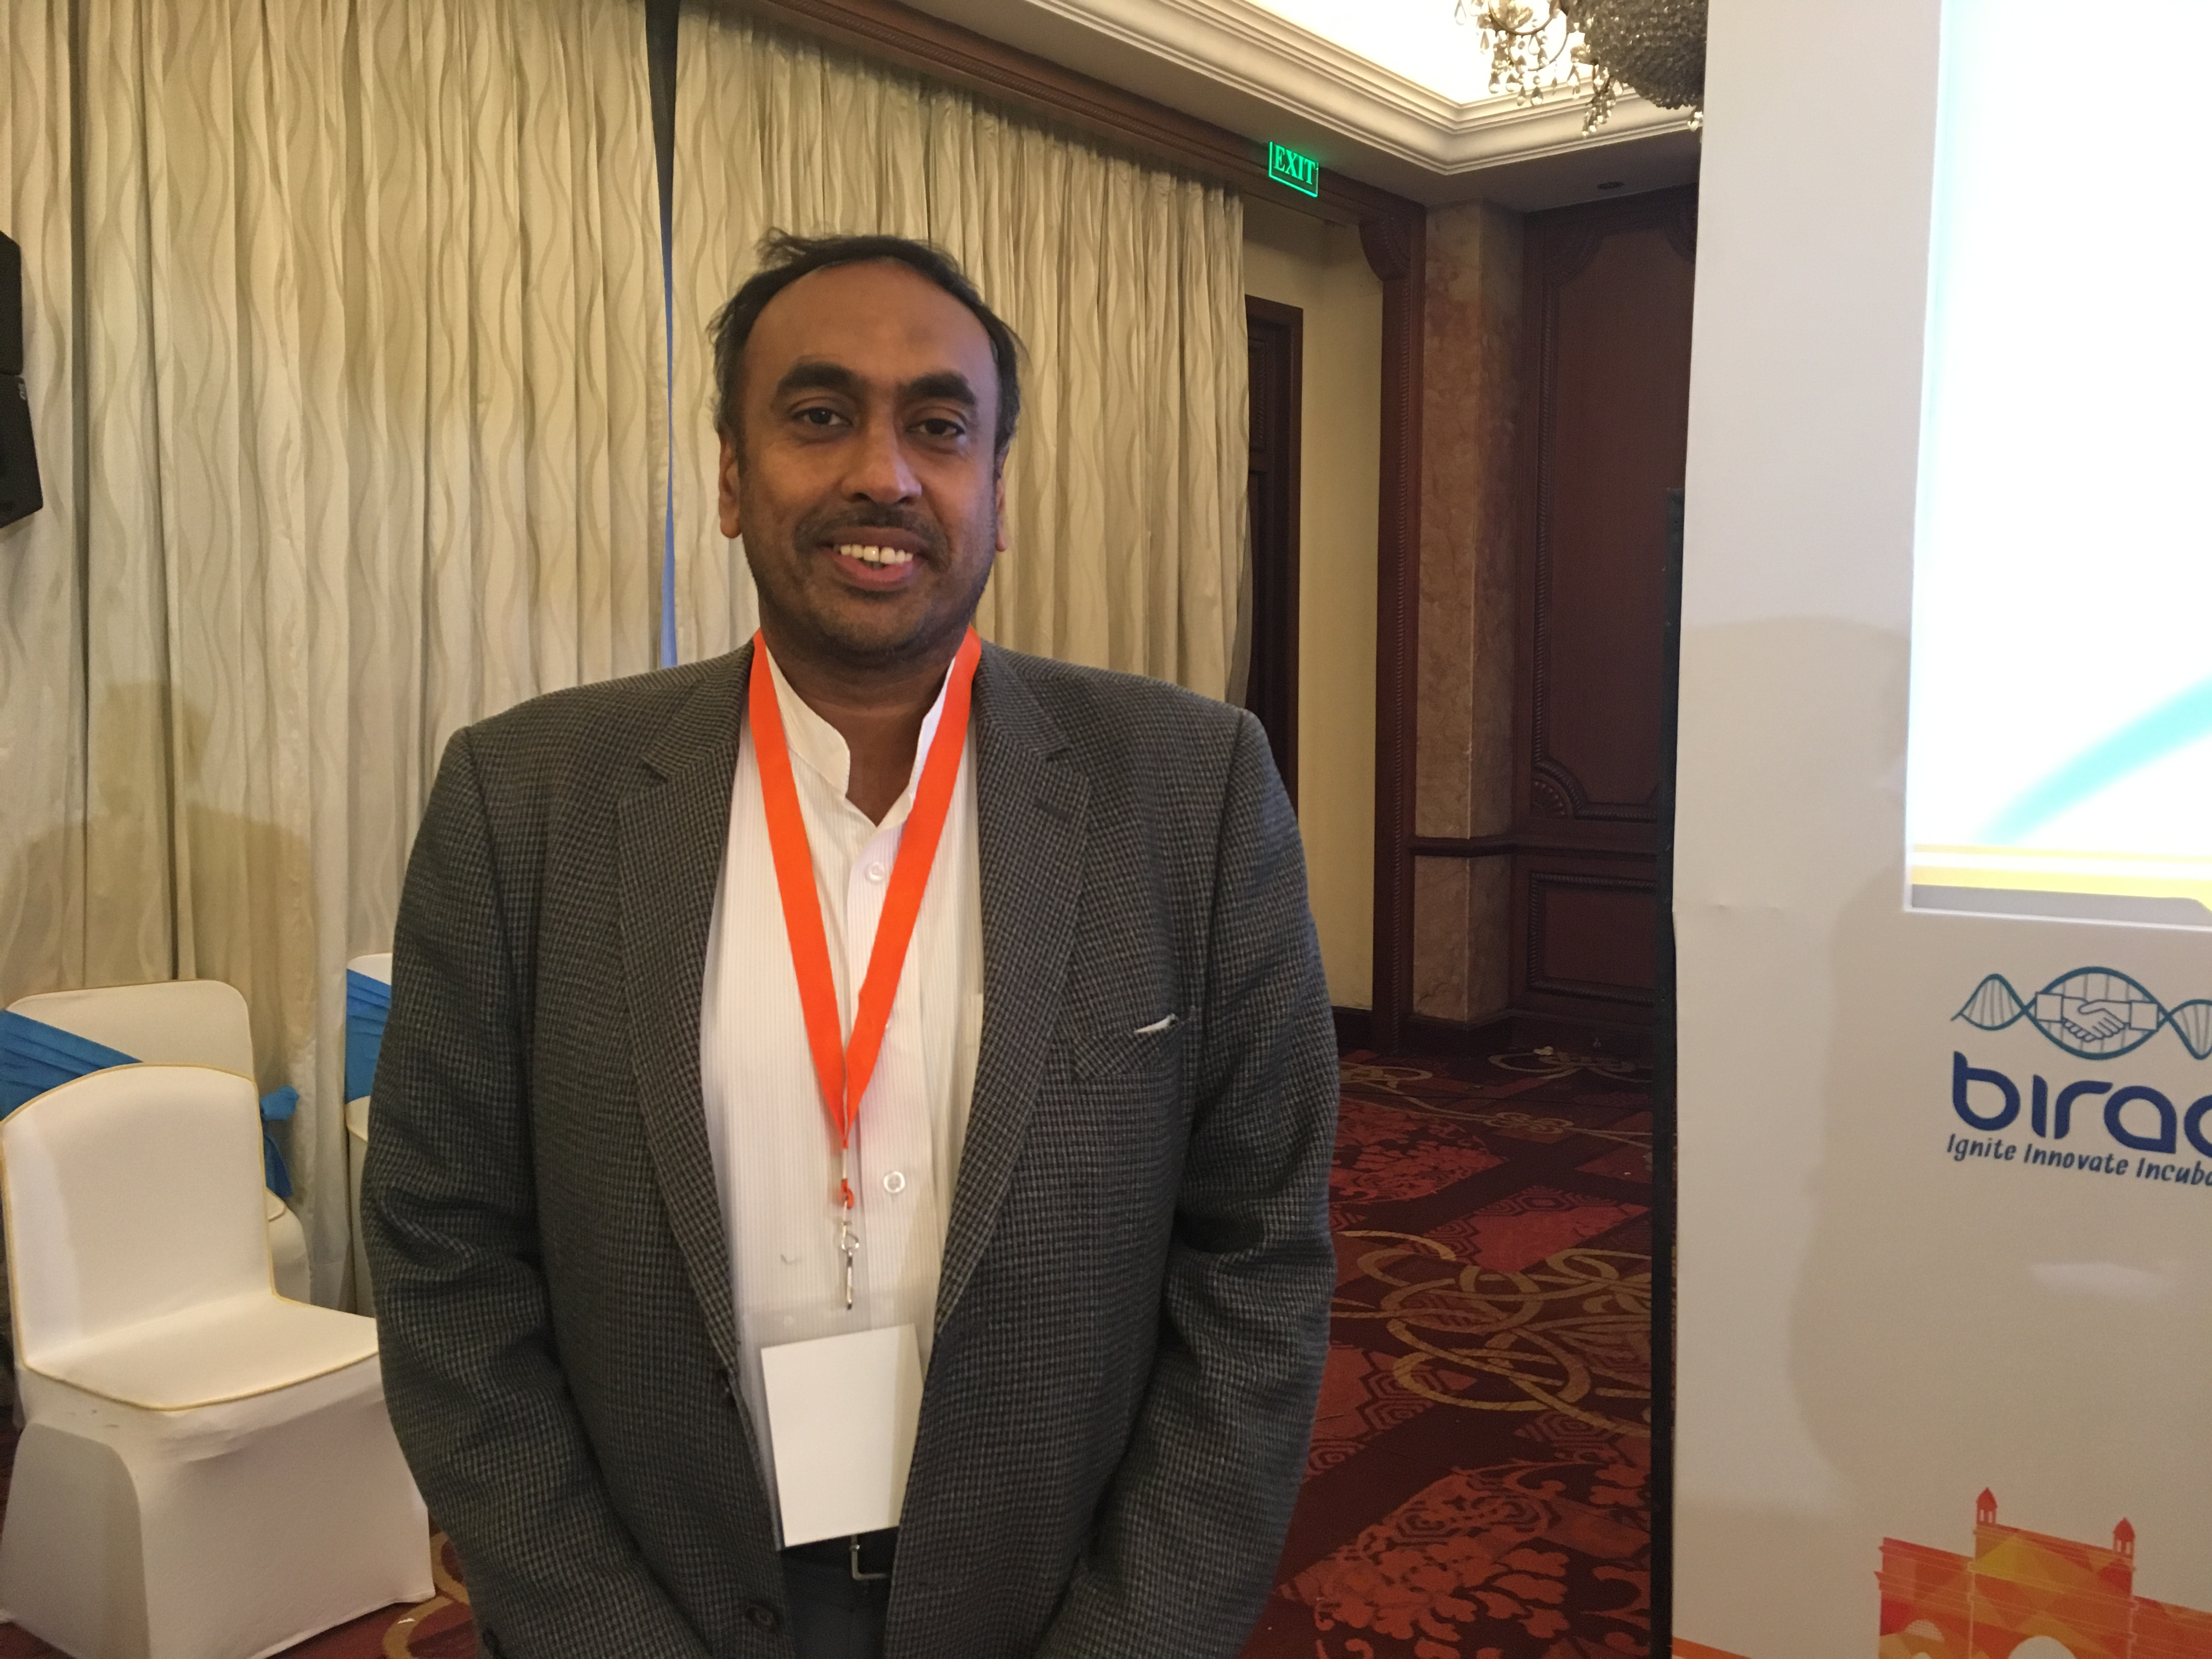 Anban Pillay, director of the National Department of Health, South Africa.